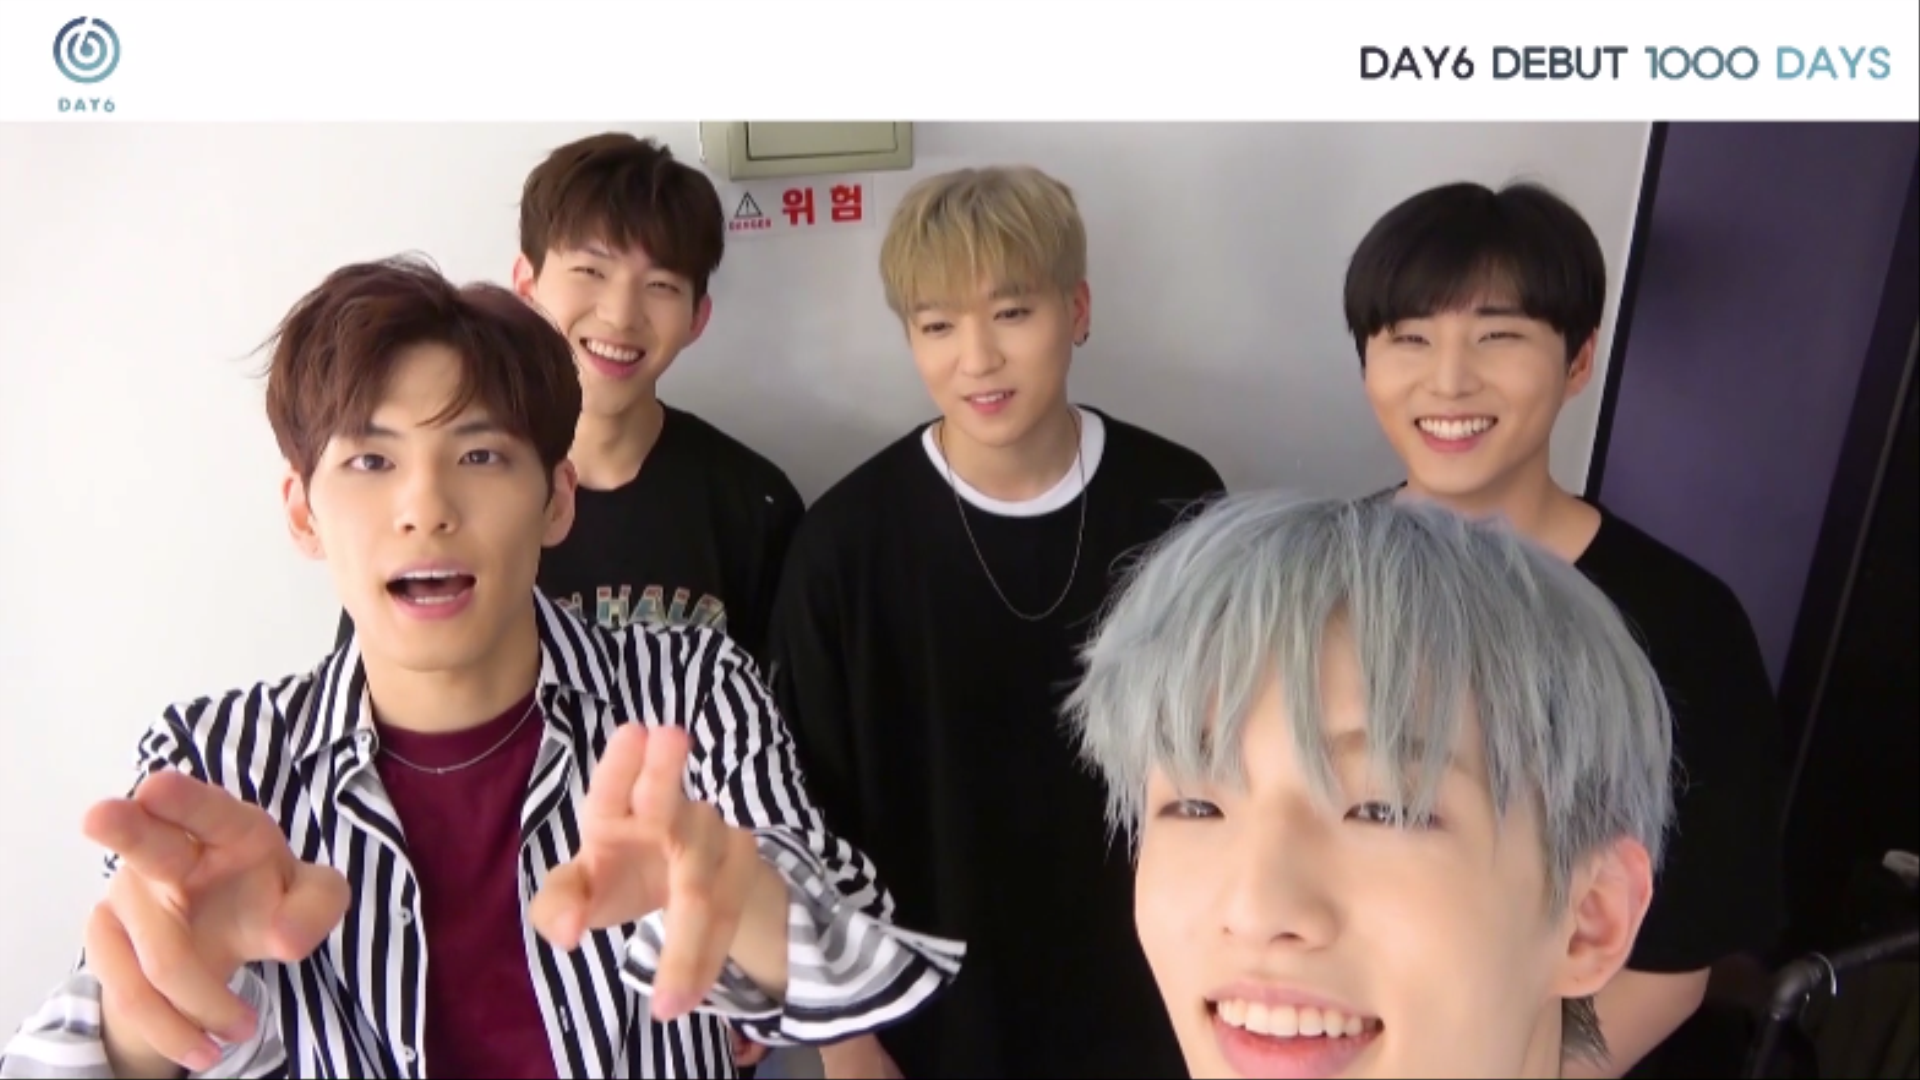 Congratulations! DAY6 DEBUT 1000 DAYS♡